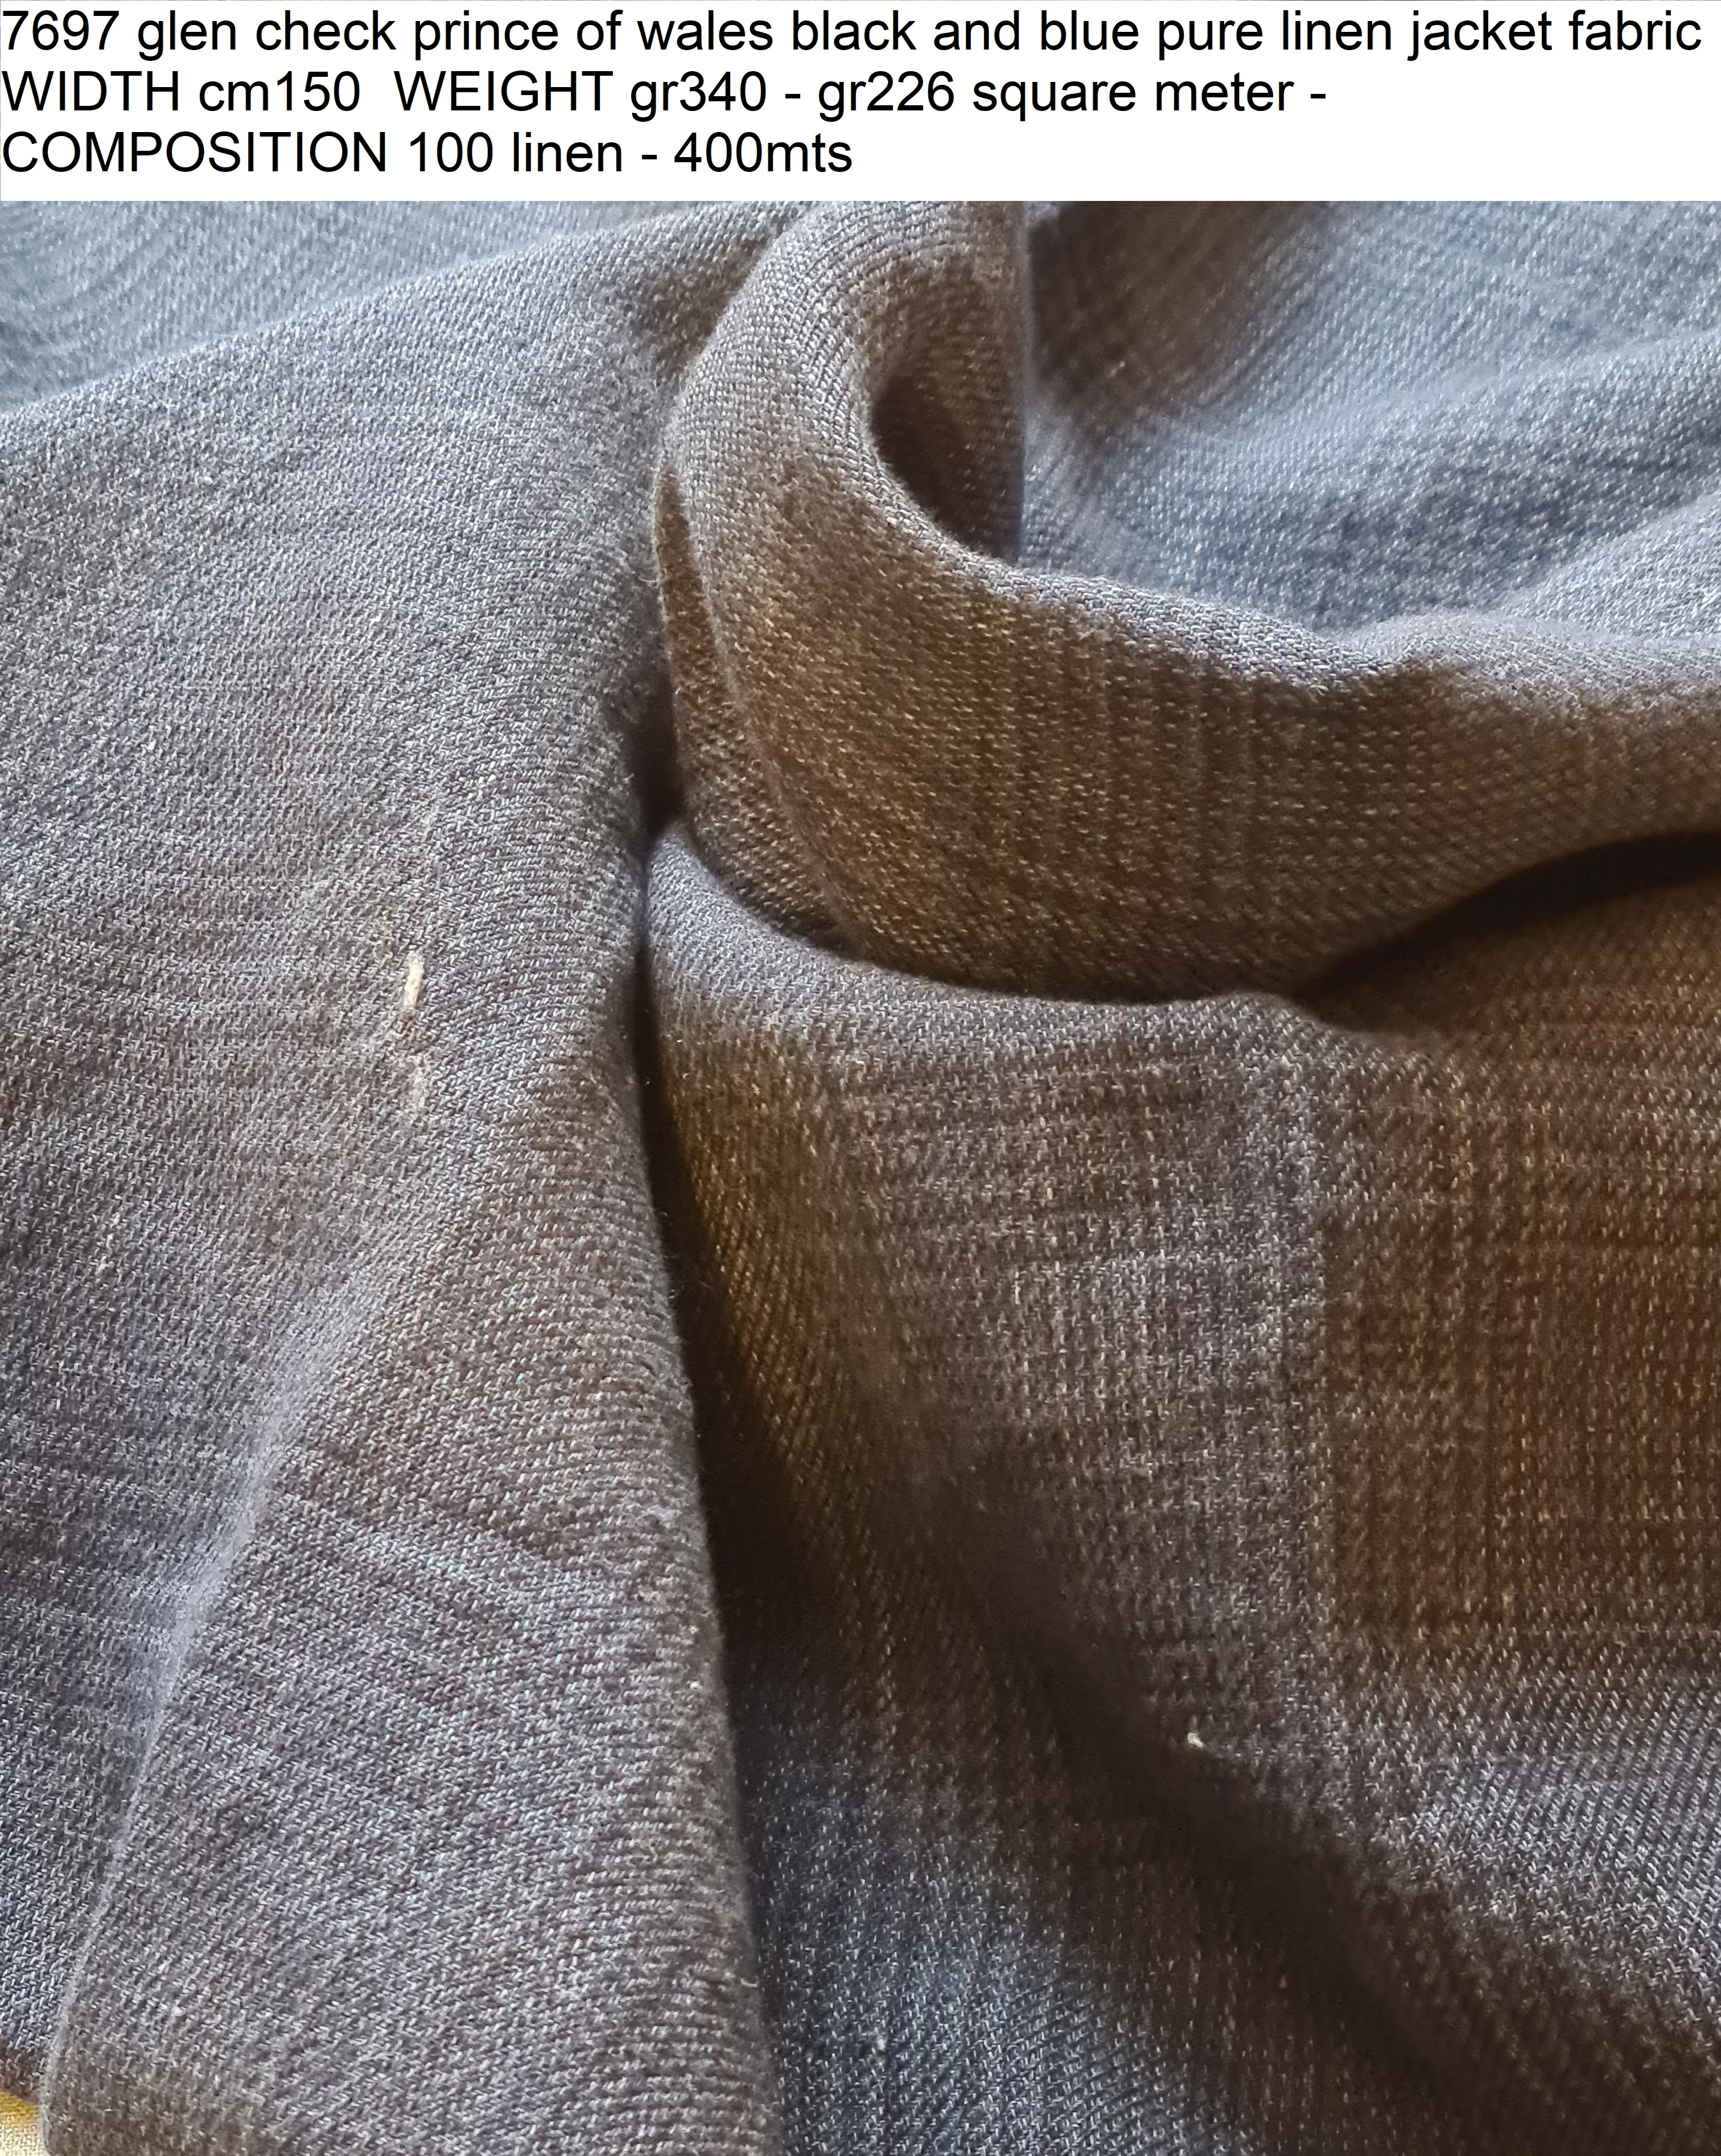 7697 glen check prince of wales black and blue pure linen jacket fabric WIDTH cm150 WEIGHT gr340 - gr226 square meter - COMPOSITION 100 linen - 400mts